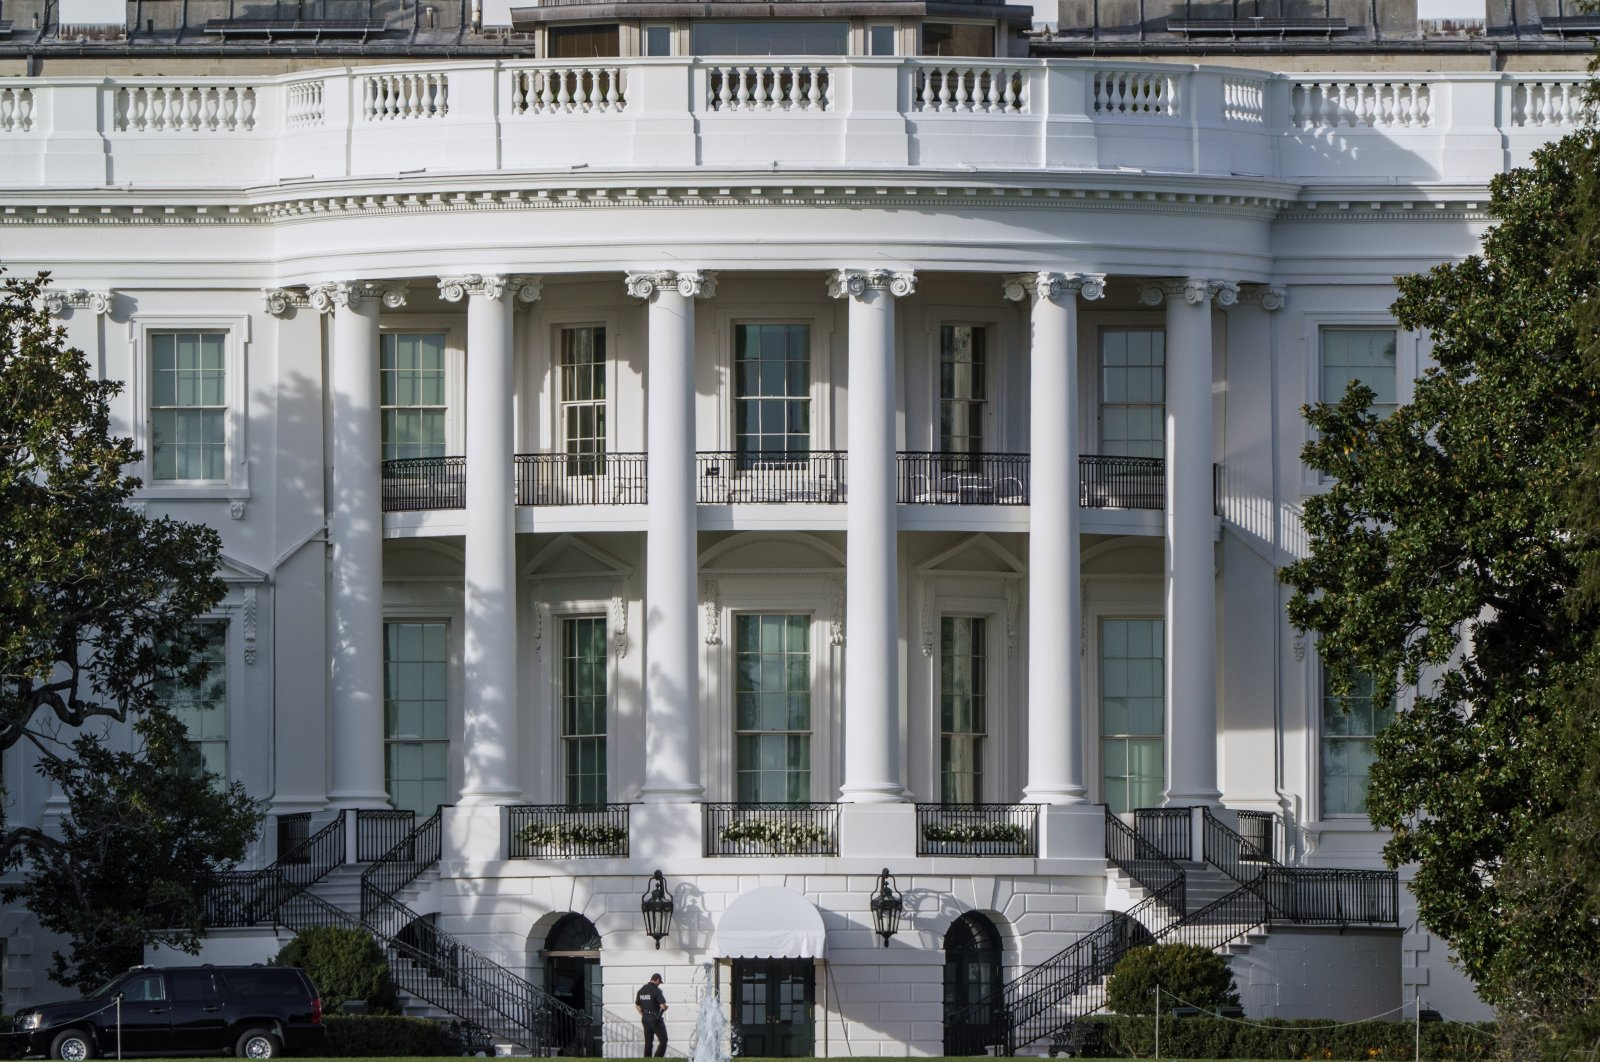 The South Portico of the White House is seen from Constitution Avenue two days after Election Day, Washington, D.C., Nov. 5, 2020. (AP Photo)